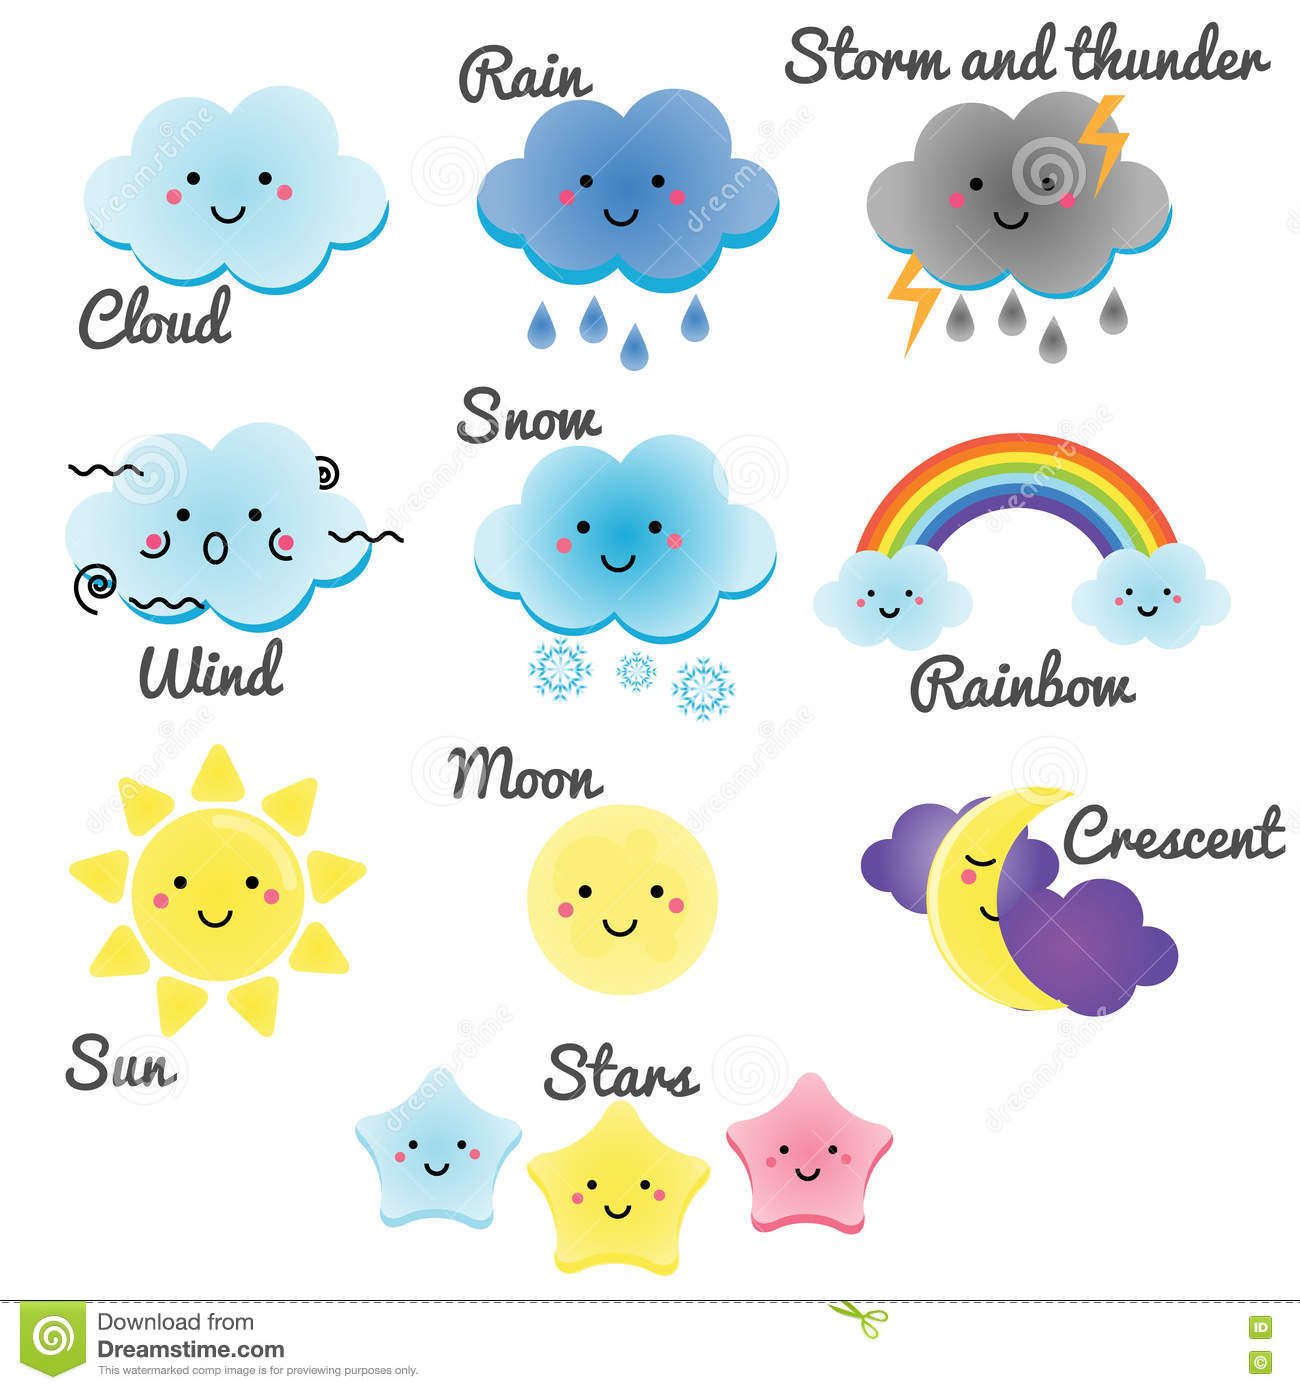 Cute Weather And Sky Elements Kawaii Moon Sun Rain And Clouds Vector Illustration For Kids